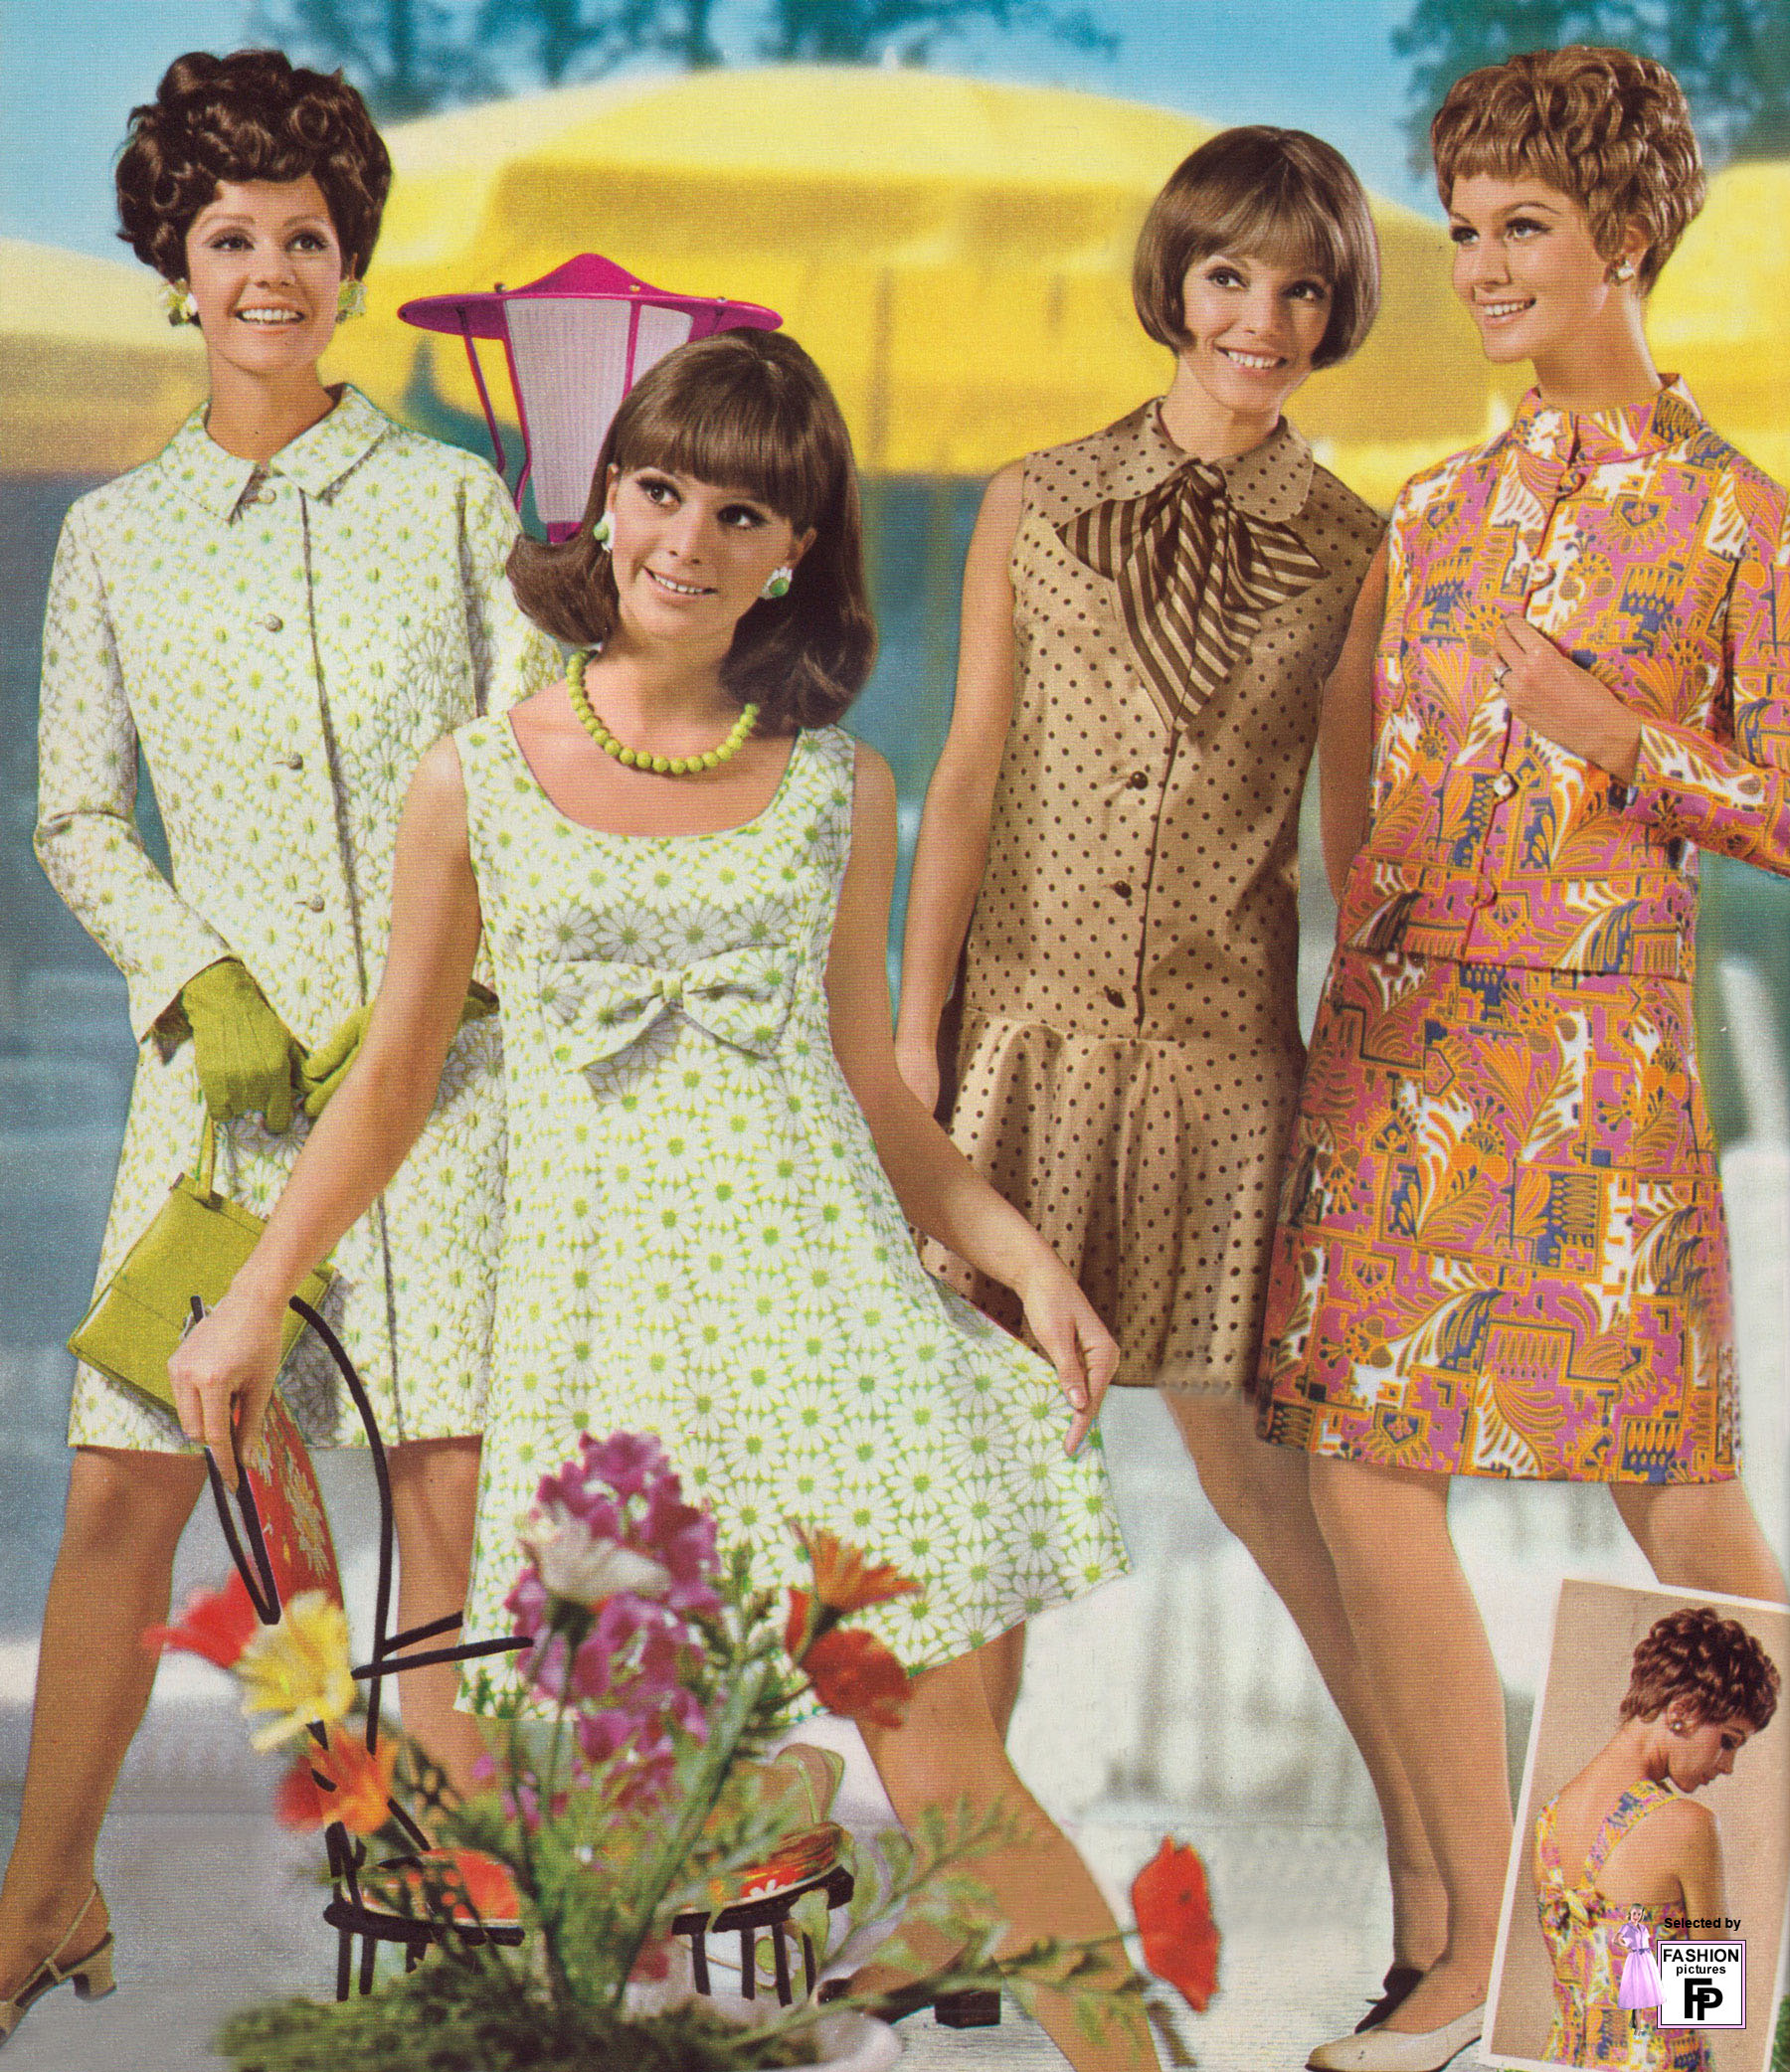 Best 1960s Fashion Trends and Outfits - 60s Fashion and Style Fashion in the 1960s compared to now